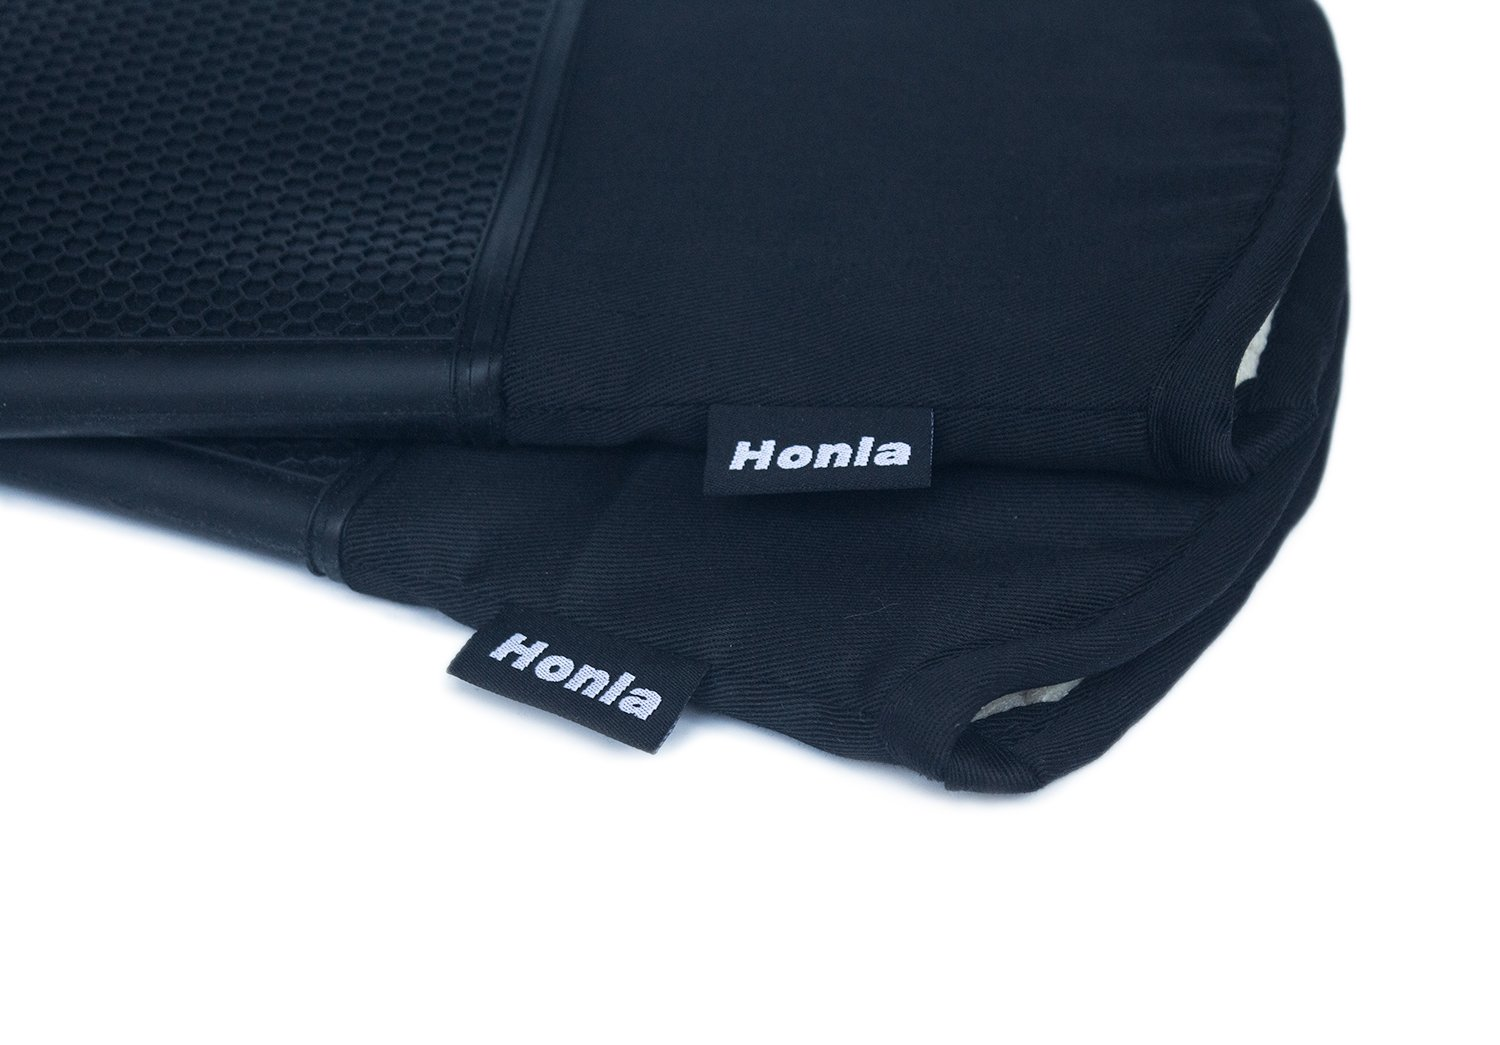 Honla Silicone Oven Mitts - Heat Resistant to 500° F,1 Pair of Non-Slip Kitchen Oven Gloves for Cooking,Baking,Grilling,Barbecue Potholders,Black by Honla (Image #4)